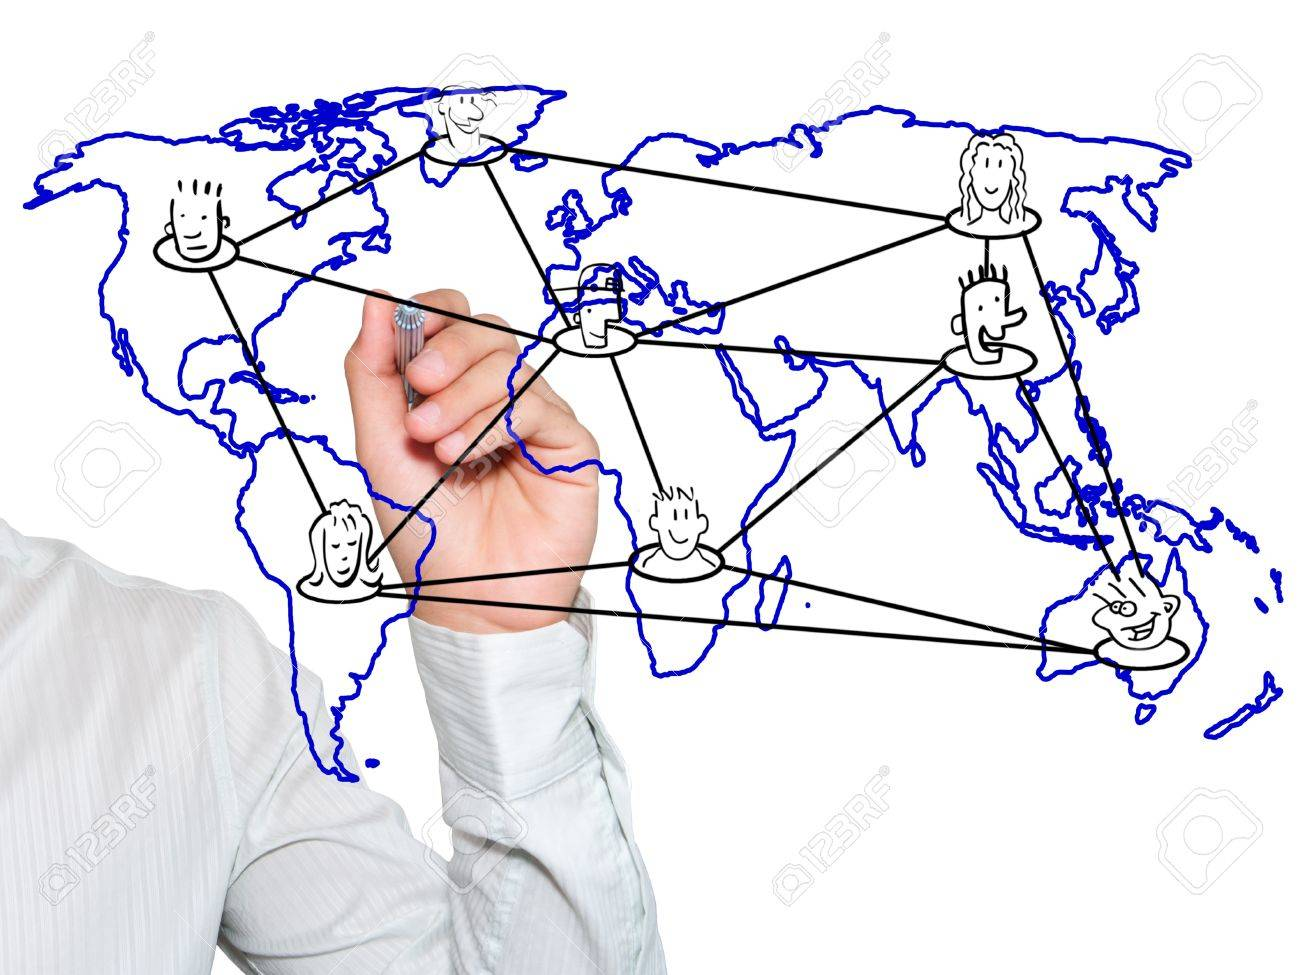 Teacher writing social network connection on world map Stock Photo - 10449245